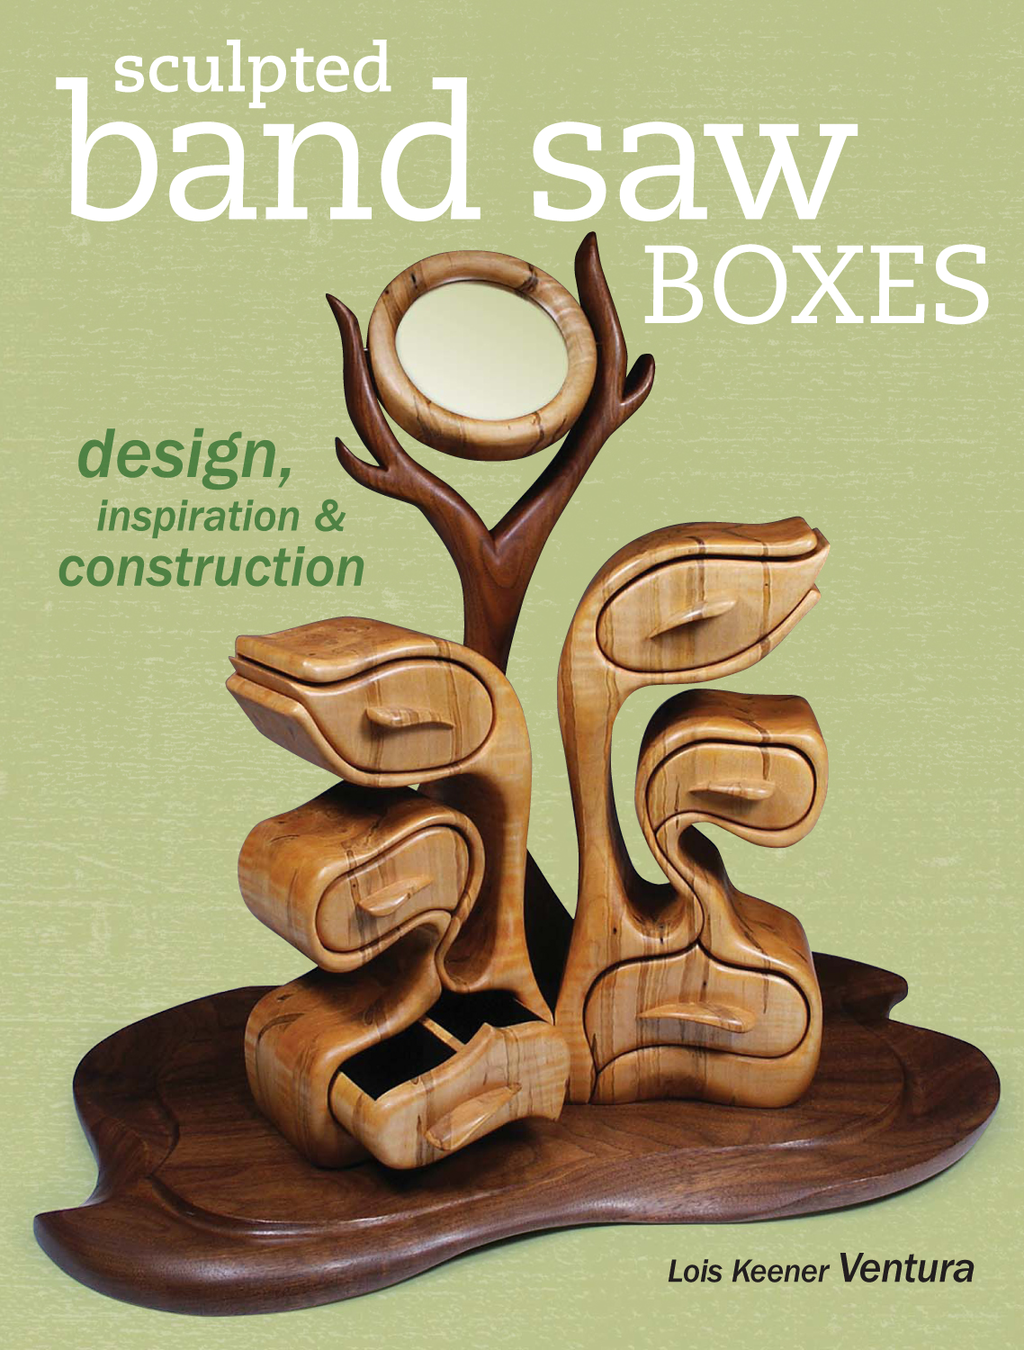 Sculpted Band Saw Boxes